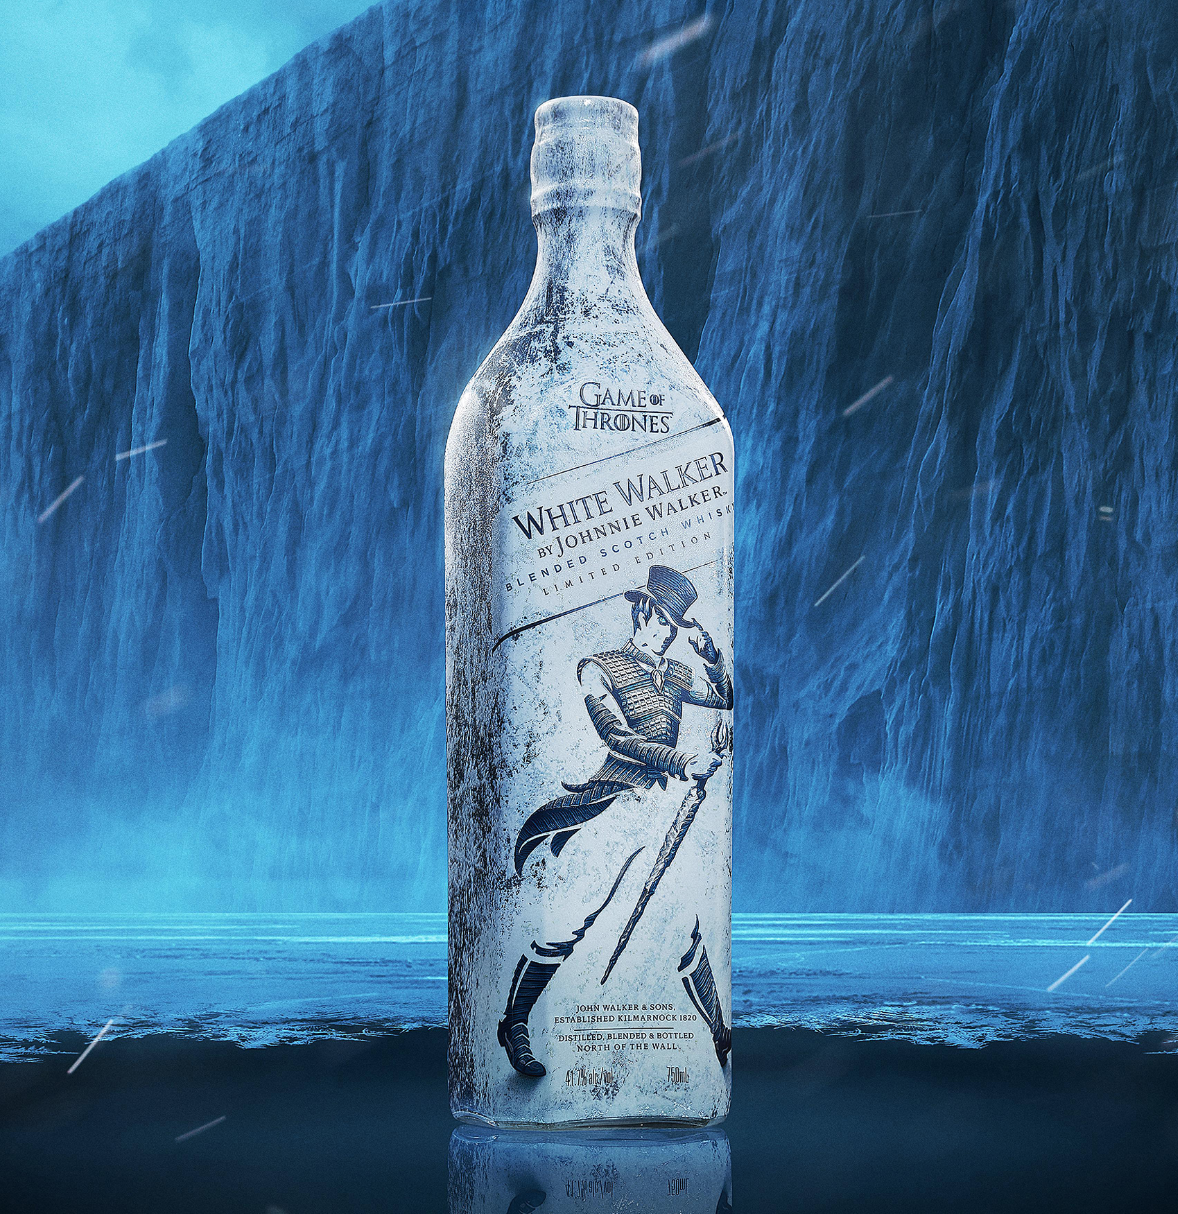 Game of Thrones and Johnnie Walker Made a Scotch Whisky, and It's About Damn Time